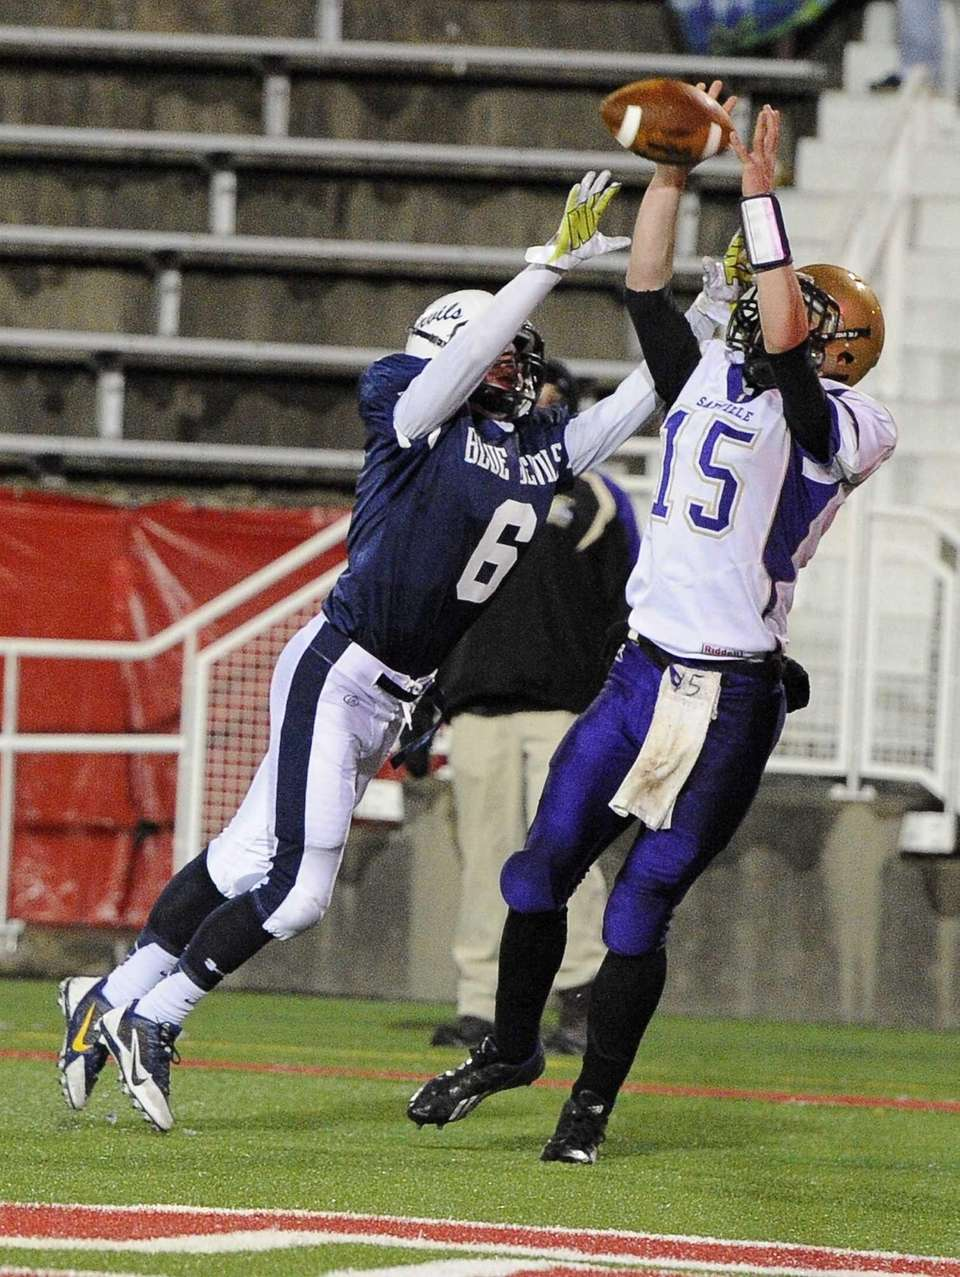 Sayville's Matt Hewson catches the pass for a